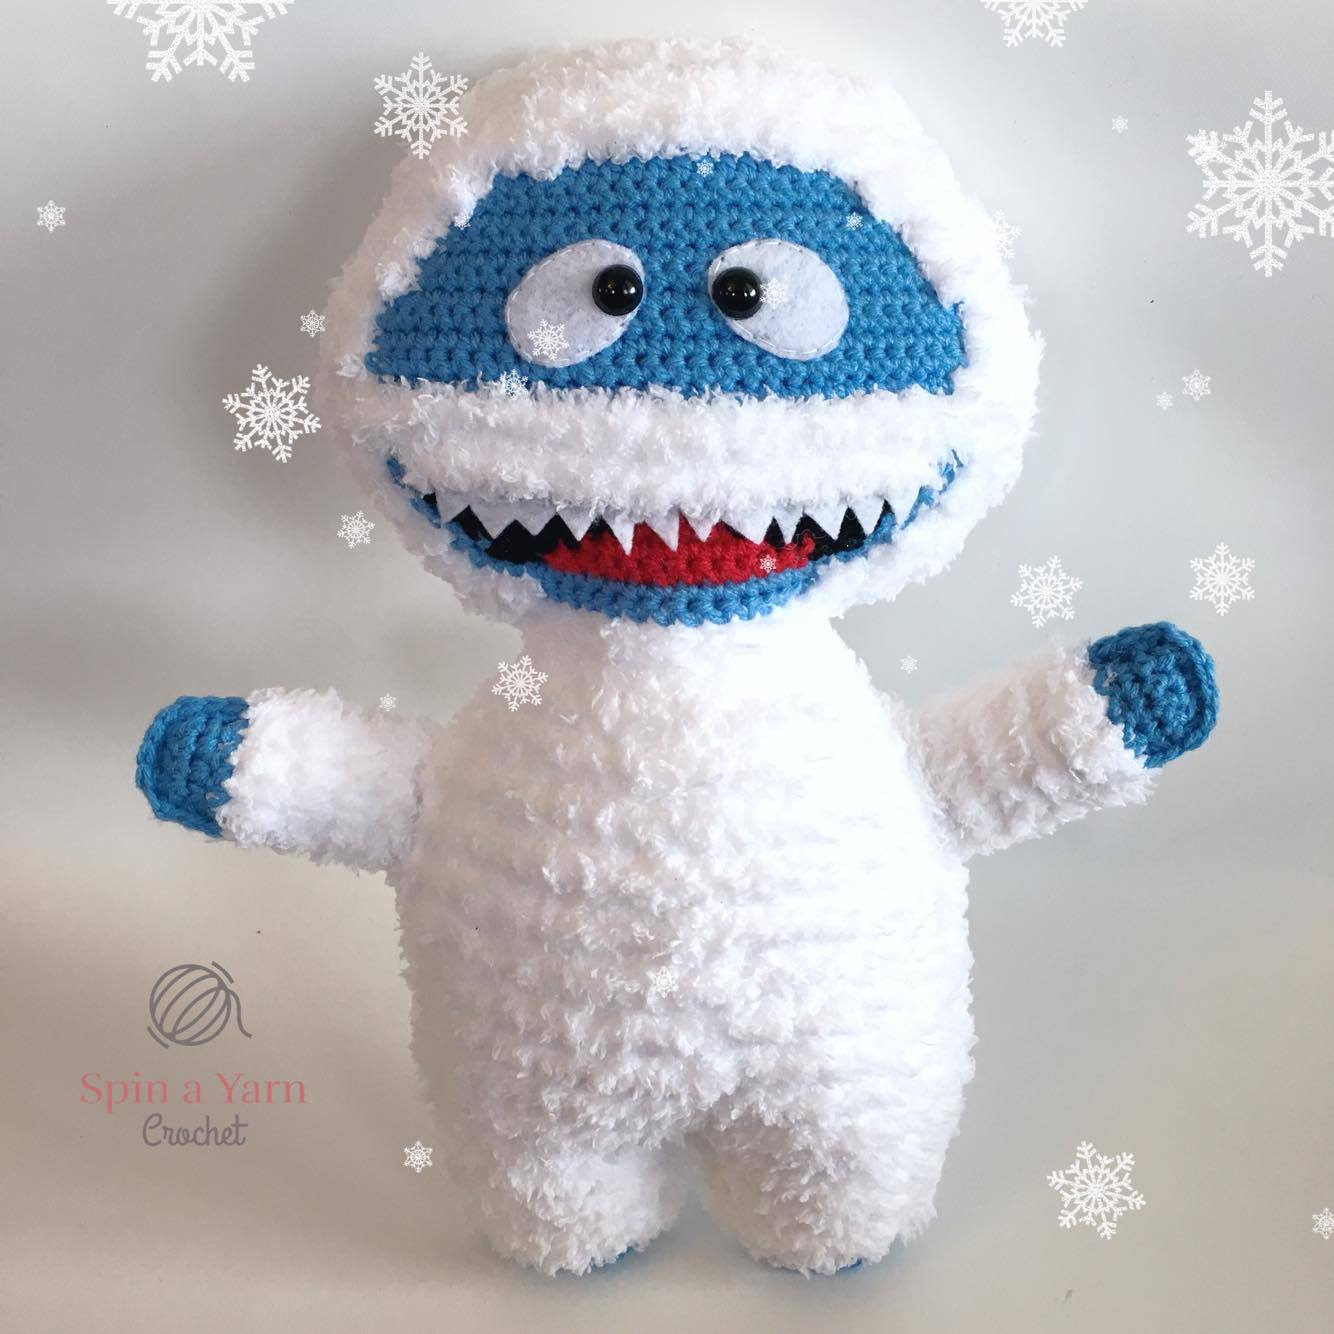 Bumble the Abominable Snowman Free Crochet Pattern • Spin a Yarn Crochet